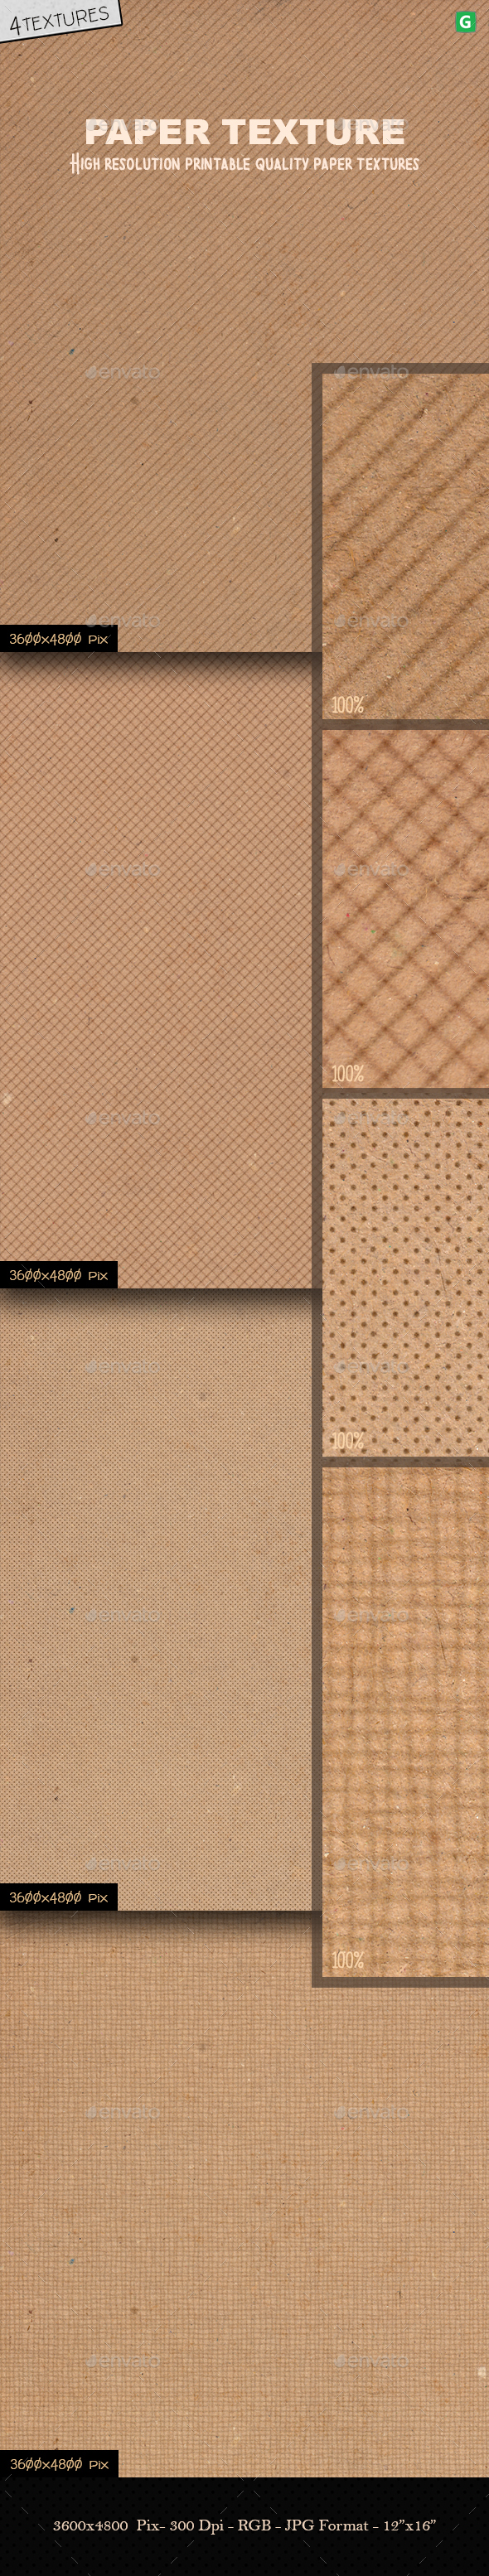 GraphicRiver Paper Texture Pack 4 20660720